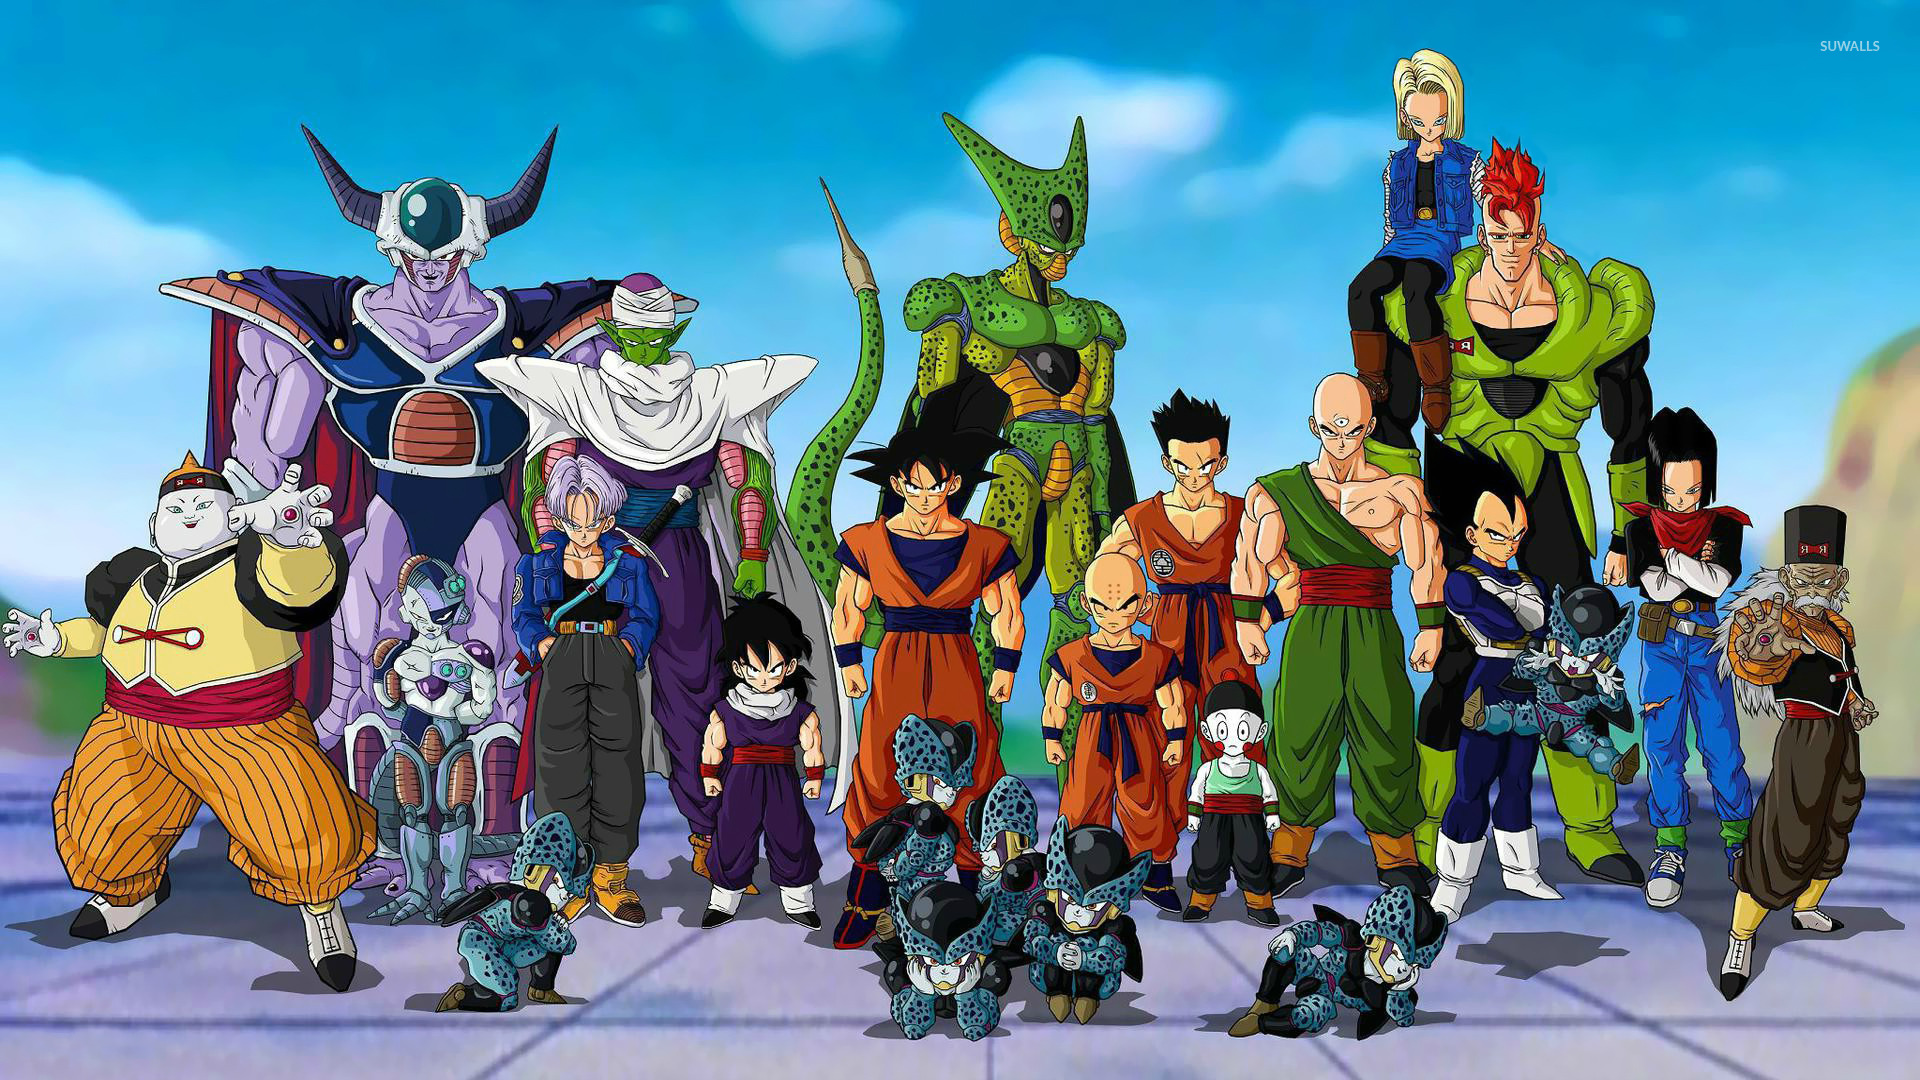 Dragon Ball Z 4 Wallpaper Anime Wallpapers 16145